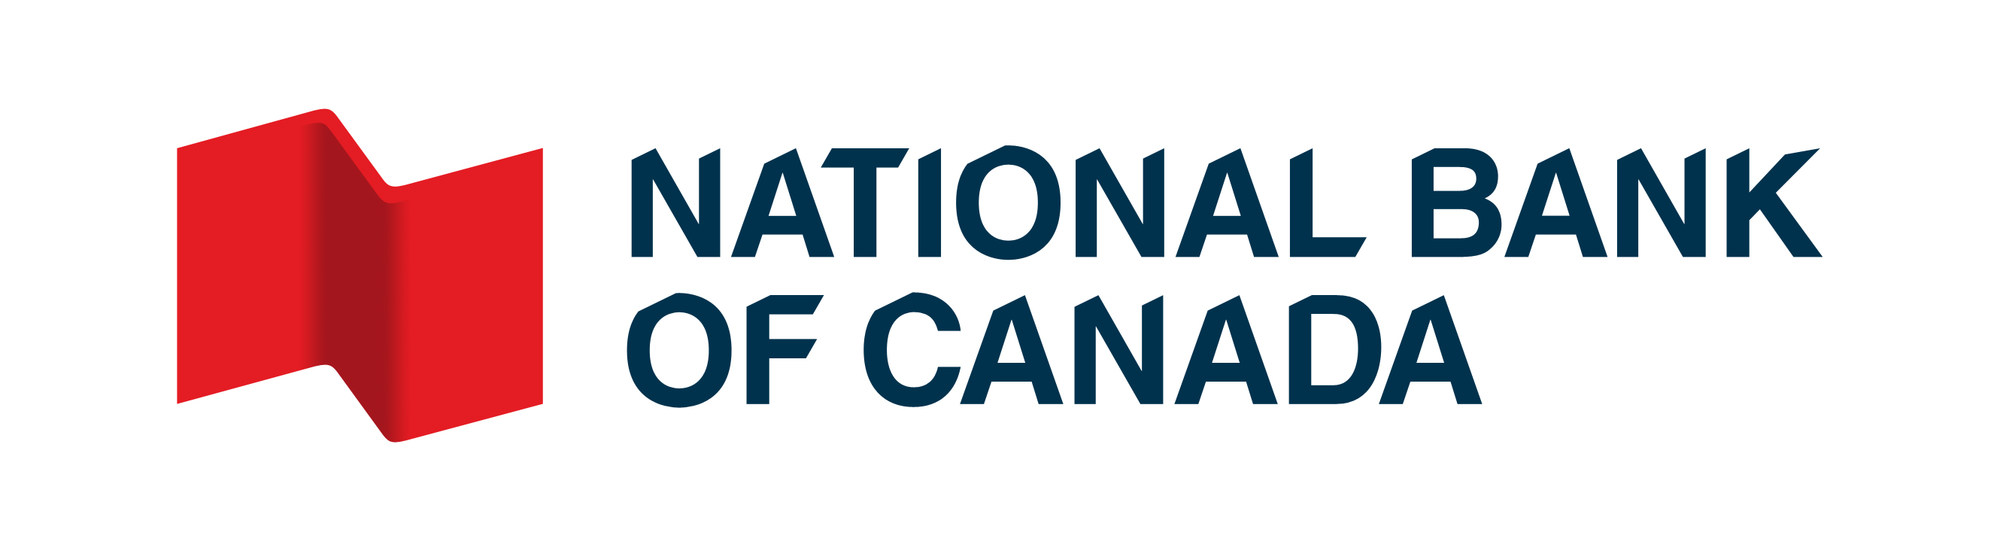 National Bank of Canada-Inaugural Renminbi Bond issuance program